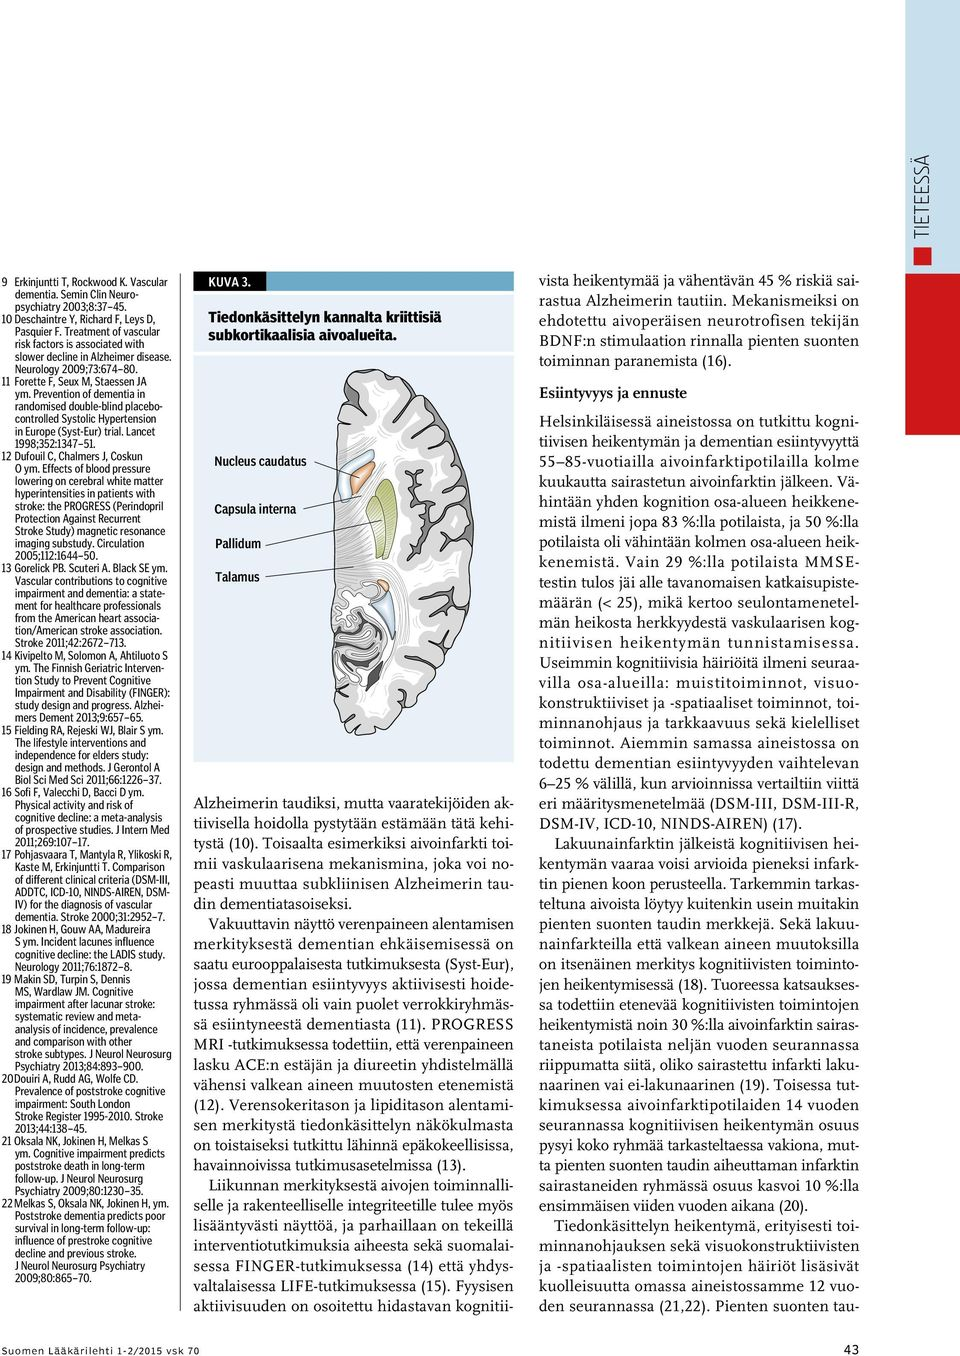 Prevention of dementia in randomised double-blind placebocontrolled Systolic Hypertension in Europe (Syst-Eur) trial. Lancet 1998;352:1347 51. 12 Dufouil C, Chalmers J, Coskun O ym.